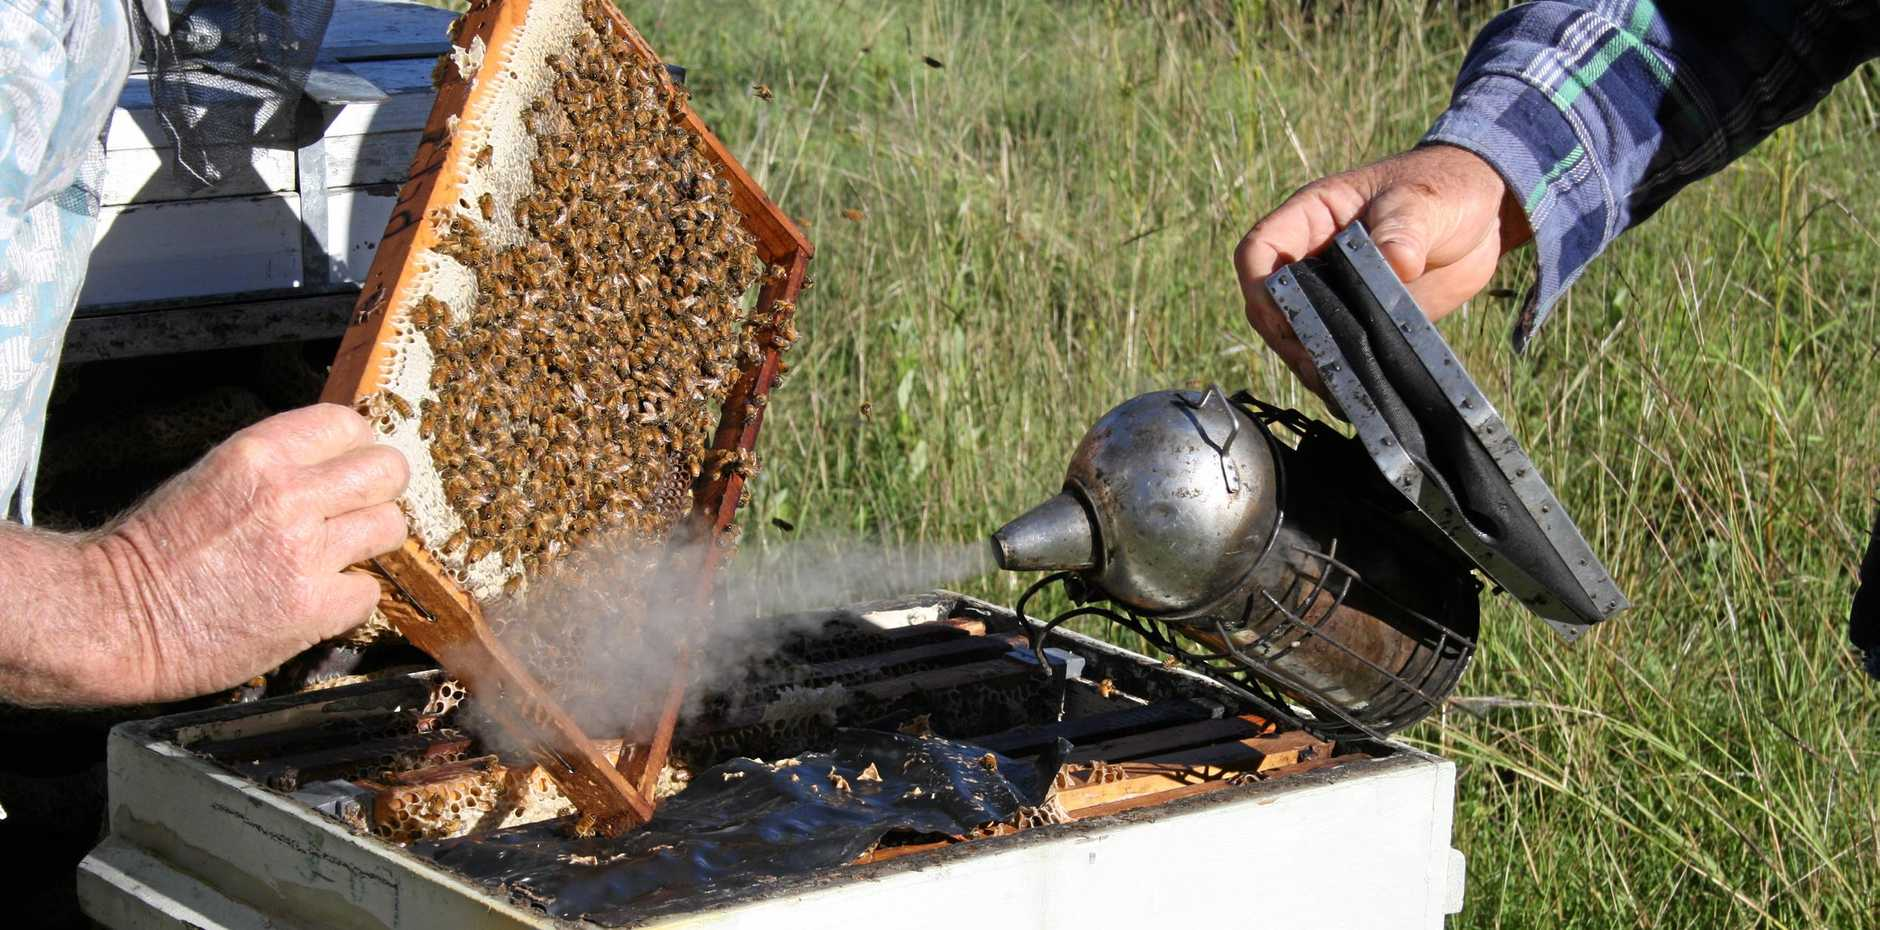 LIQUID GOLD: Along with producing quality honey bees play an important part in agriculture.  Photo Tom Threadingham / Gatton Star